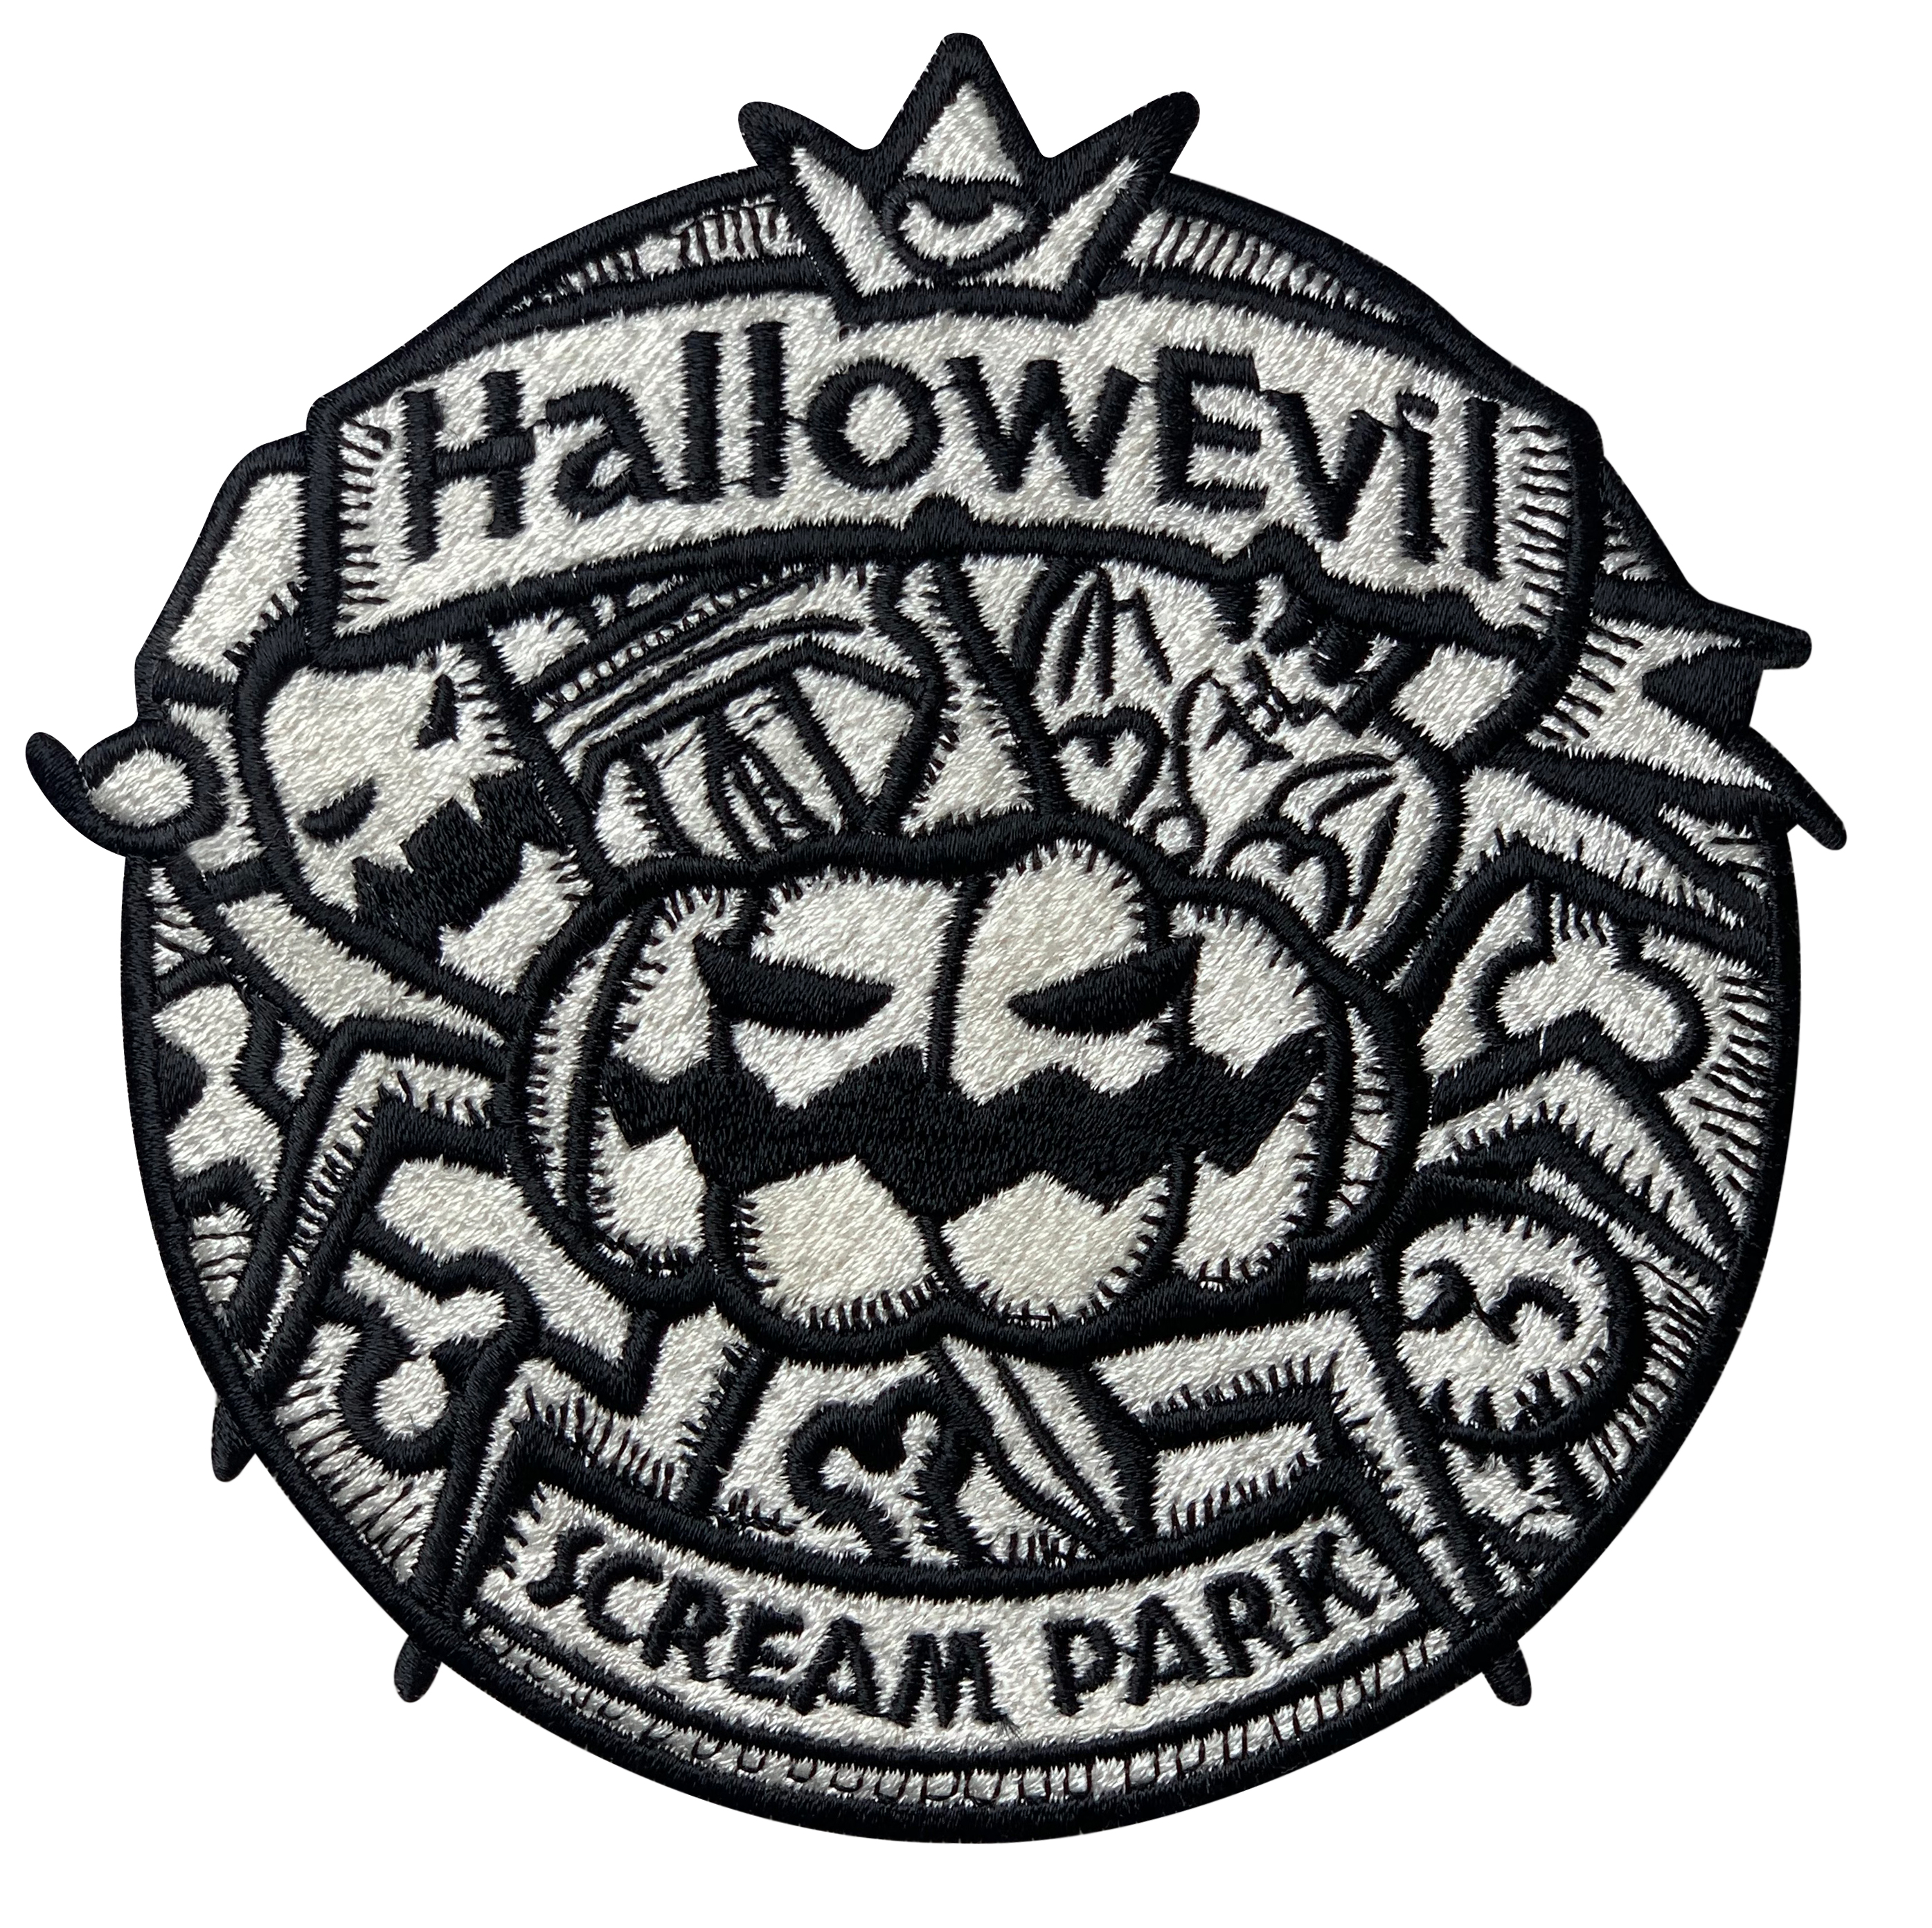 Halloween black and white embroidery patch